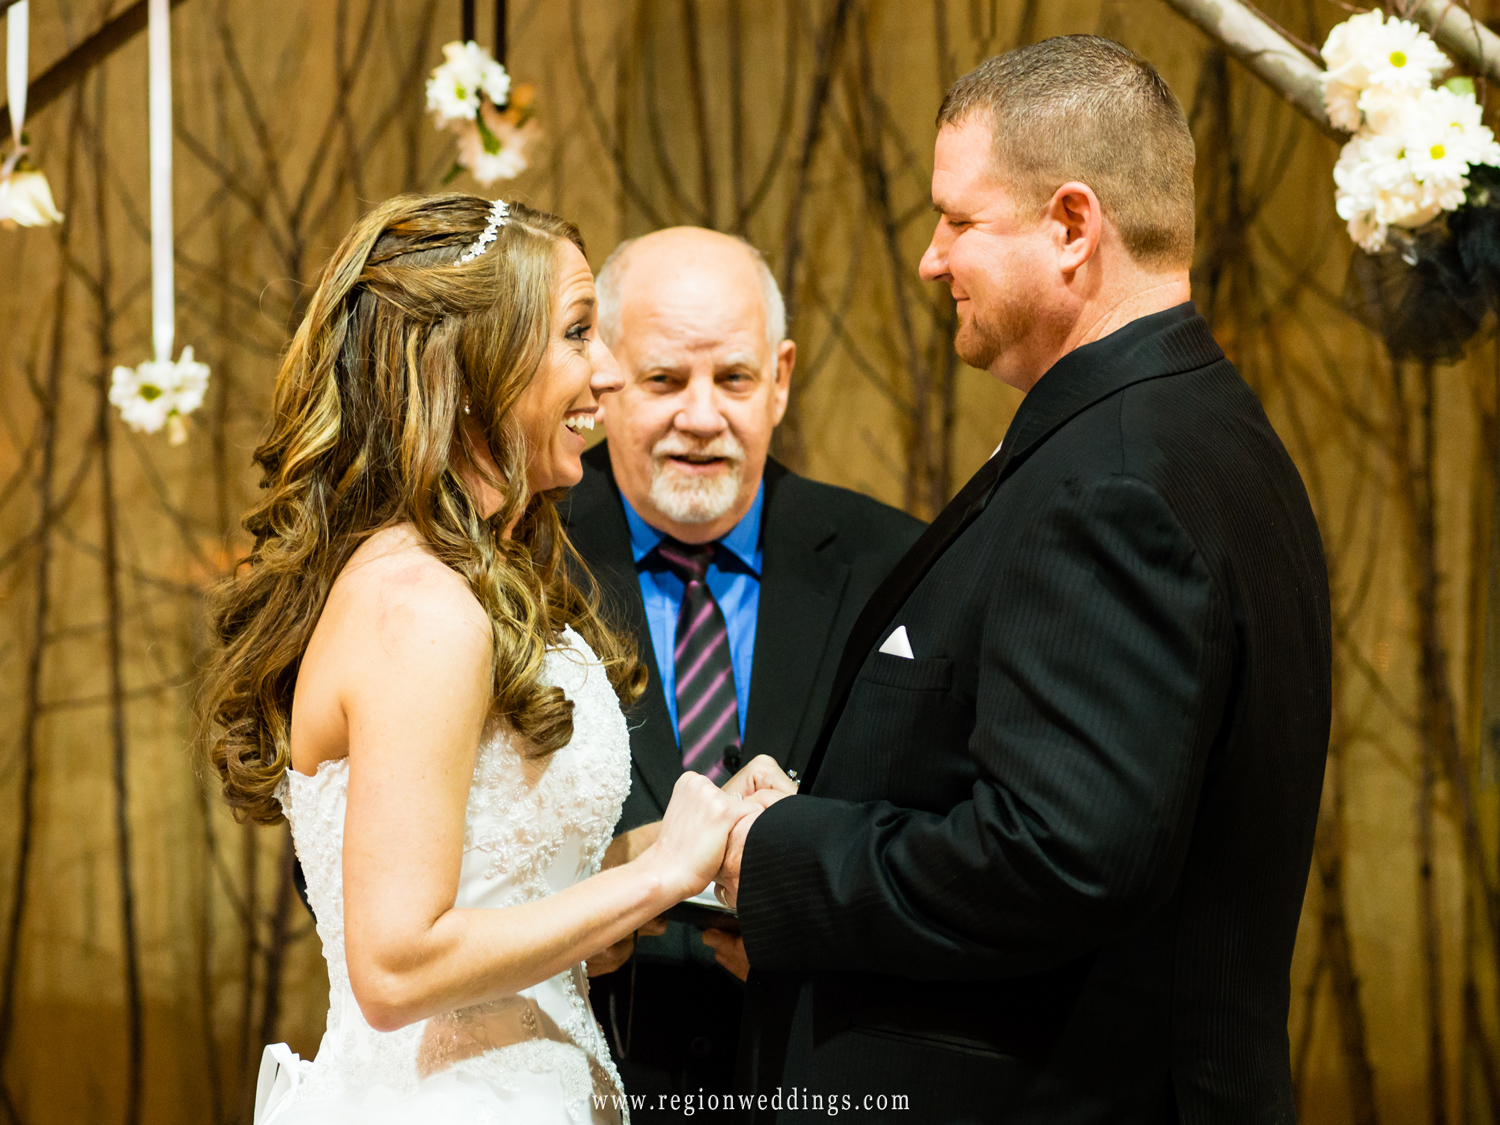 A couple exchanges vows during a wedding ceremony at County Line Orchard.